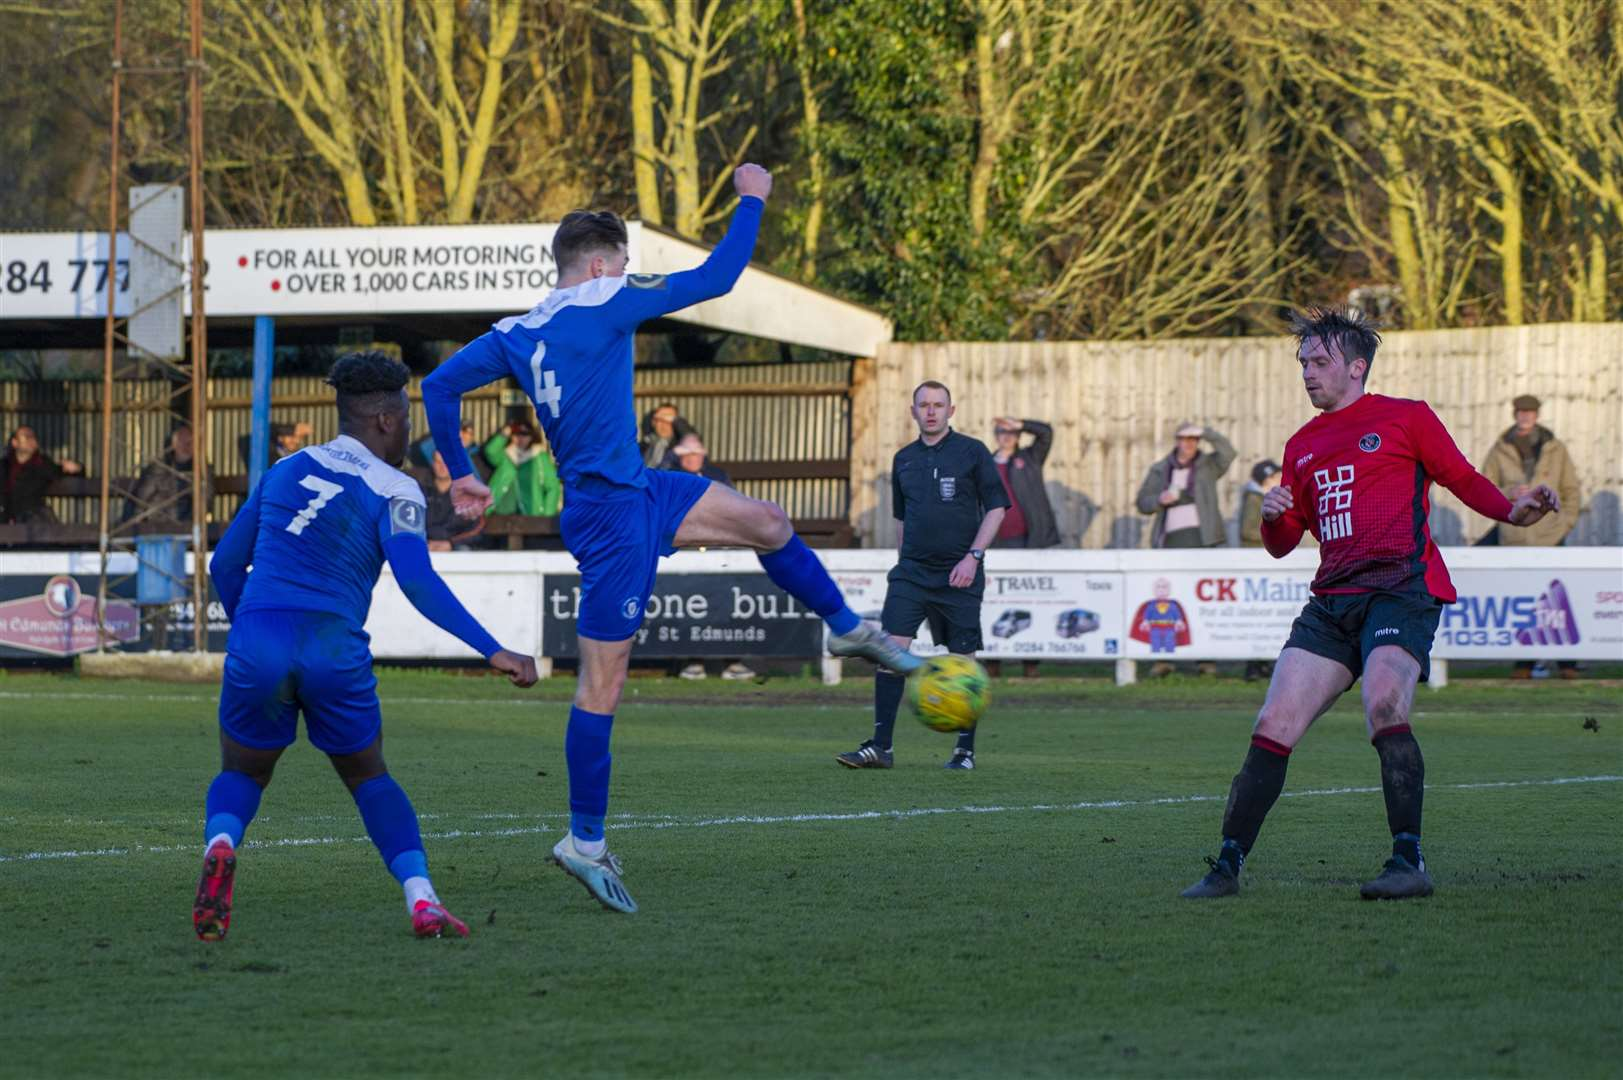 Football - Bury Town v Histon - Joe Hood scores the equaliser for Bury Town - Ram Meadow - Picture - Neil Dady. (28693523)